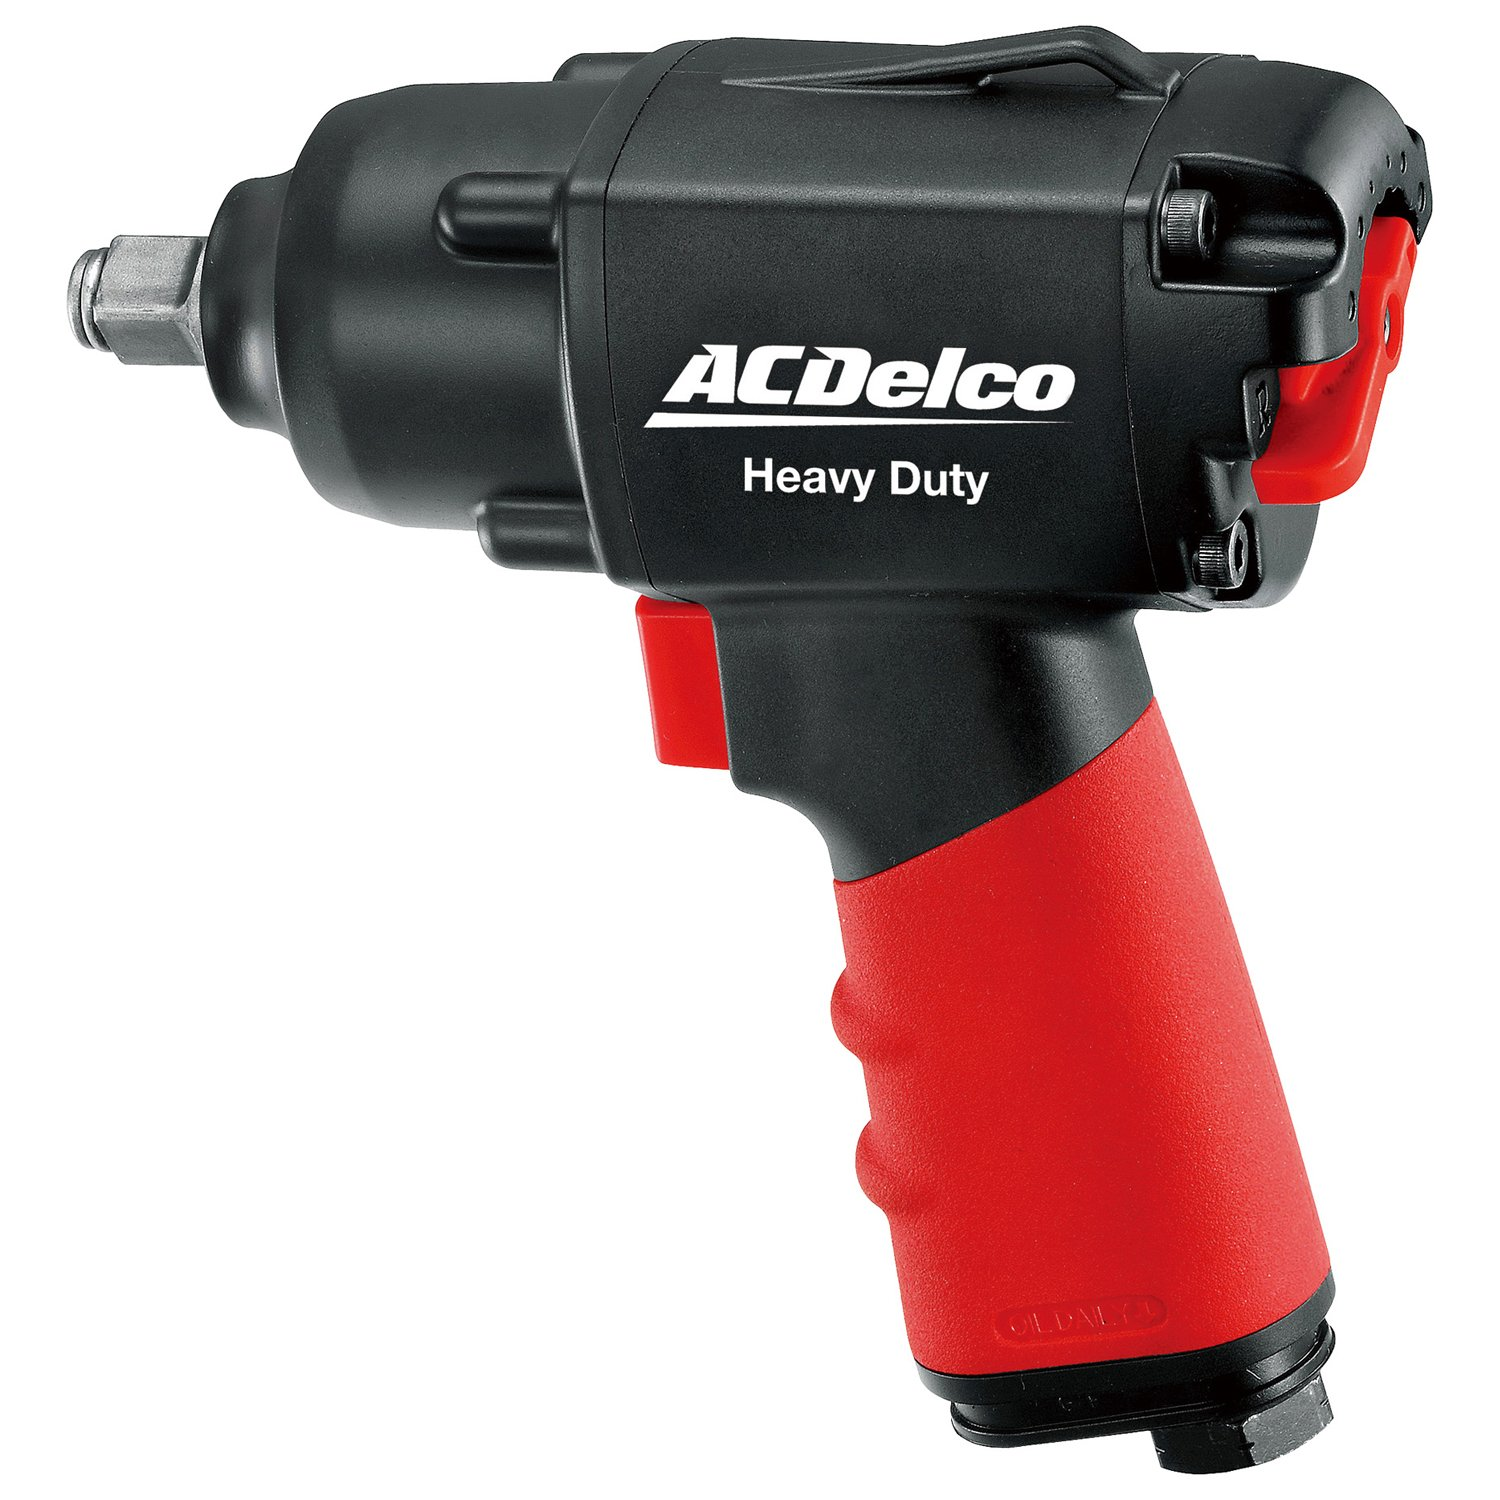 ACDelco ANI401 1/2-inch Composite Impact Wrench, 320 ft-lbs, TWIN HAMMER